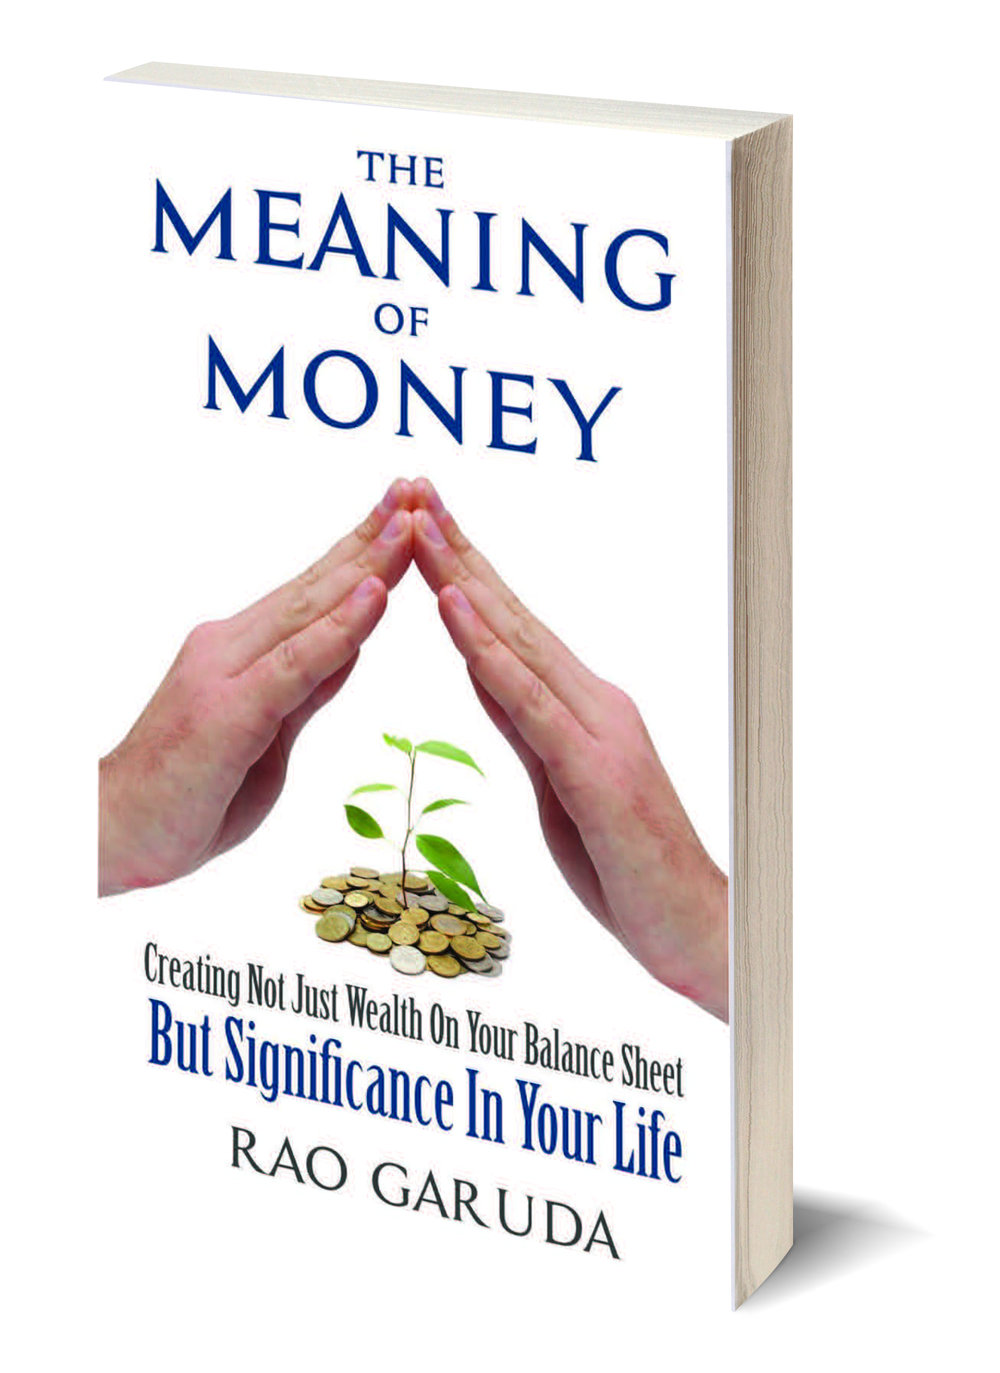 Meaning of Money Book Image for Web.jpg